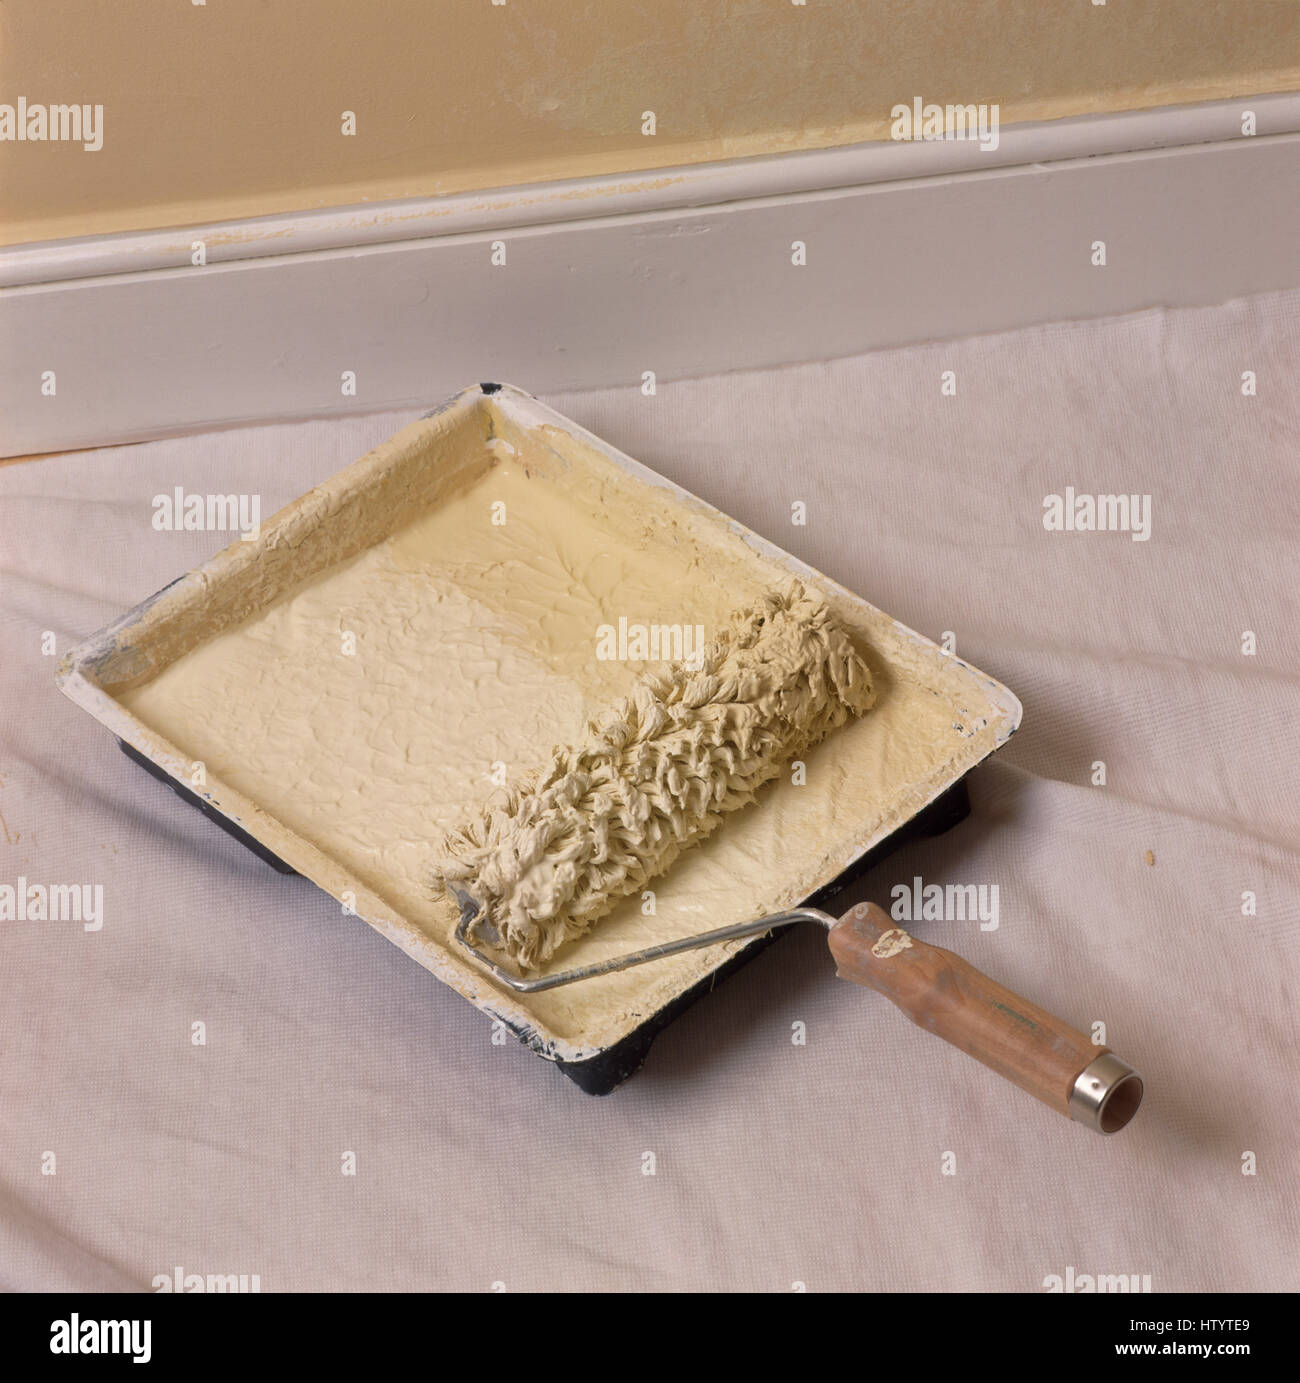 Paint Tray Stock Photos & Paint Tray Stock Images - Alamy